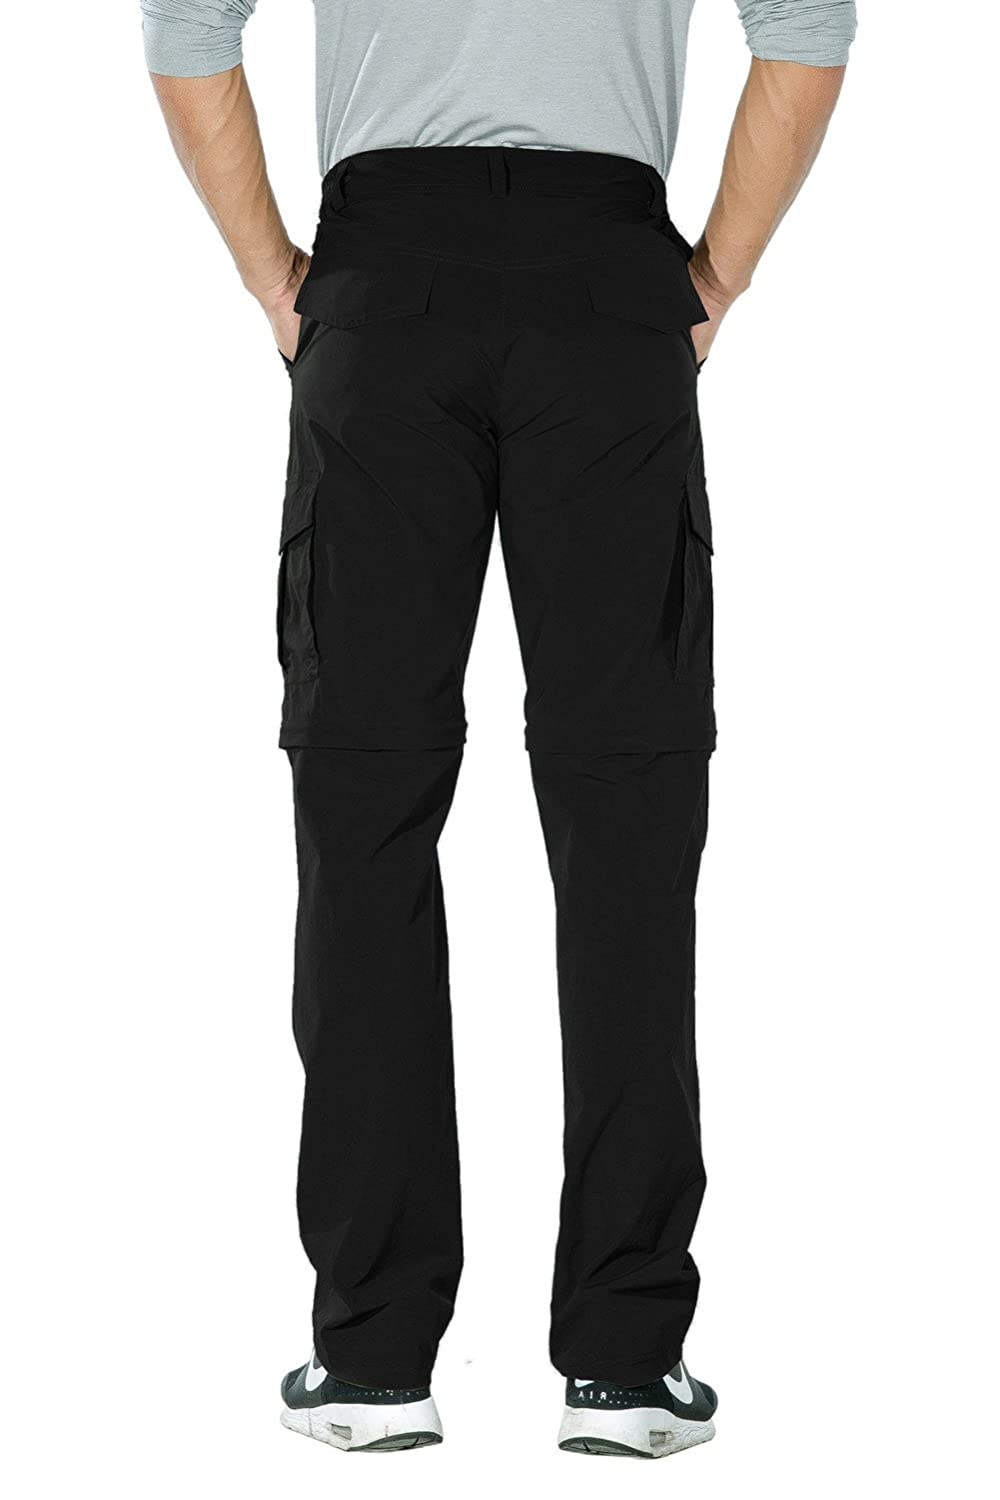 Amazon.com   Nonwe Men s Outdoor Water-Resistant Quick Dry Convertible Cargo  Pants   Sports   Outdoors d37f391c5